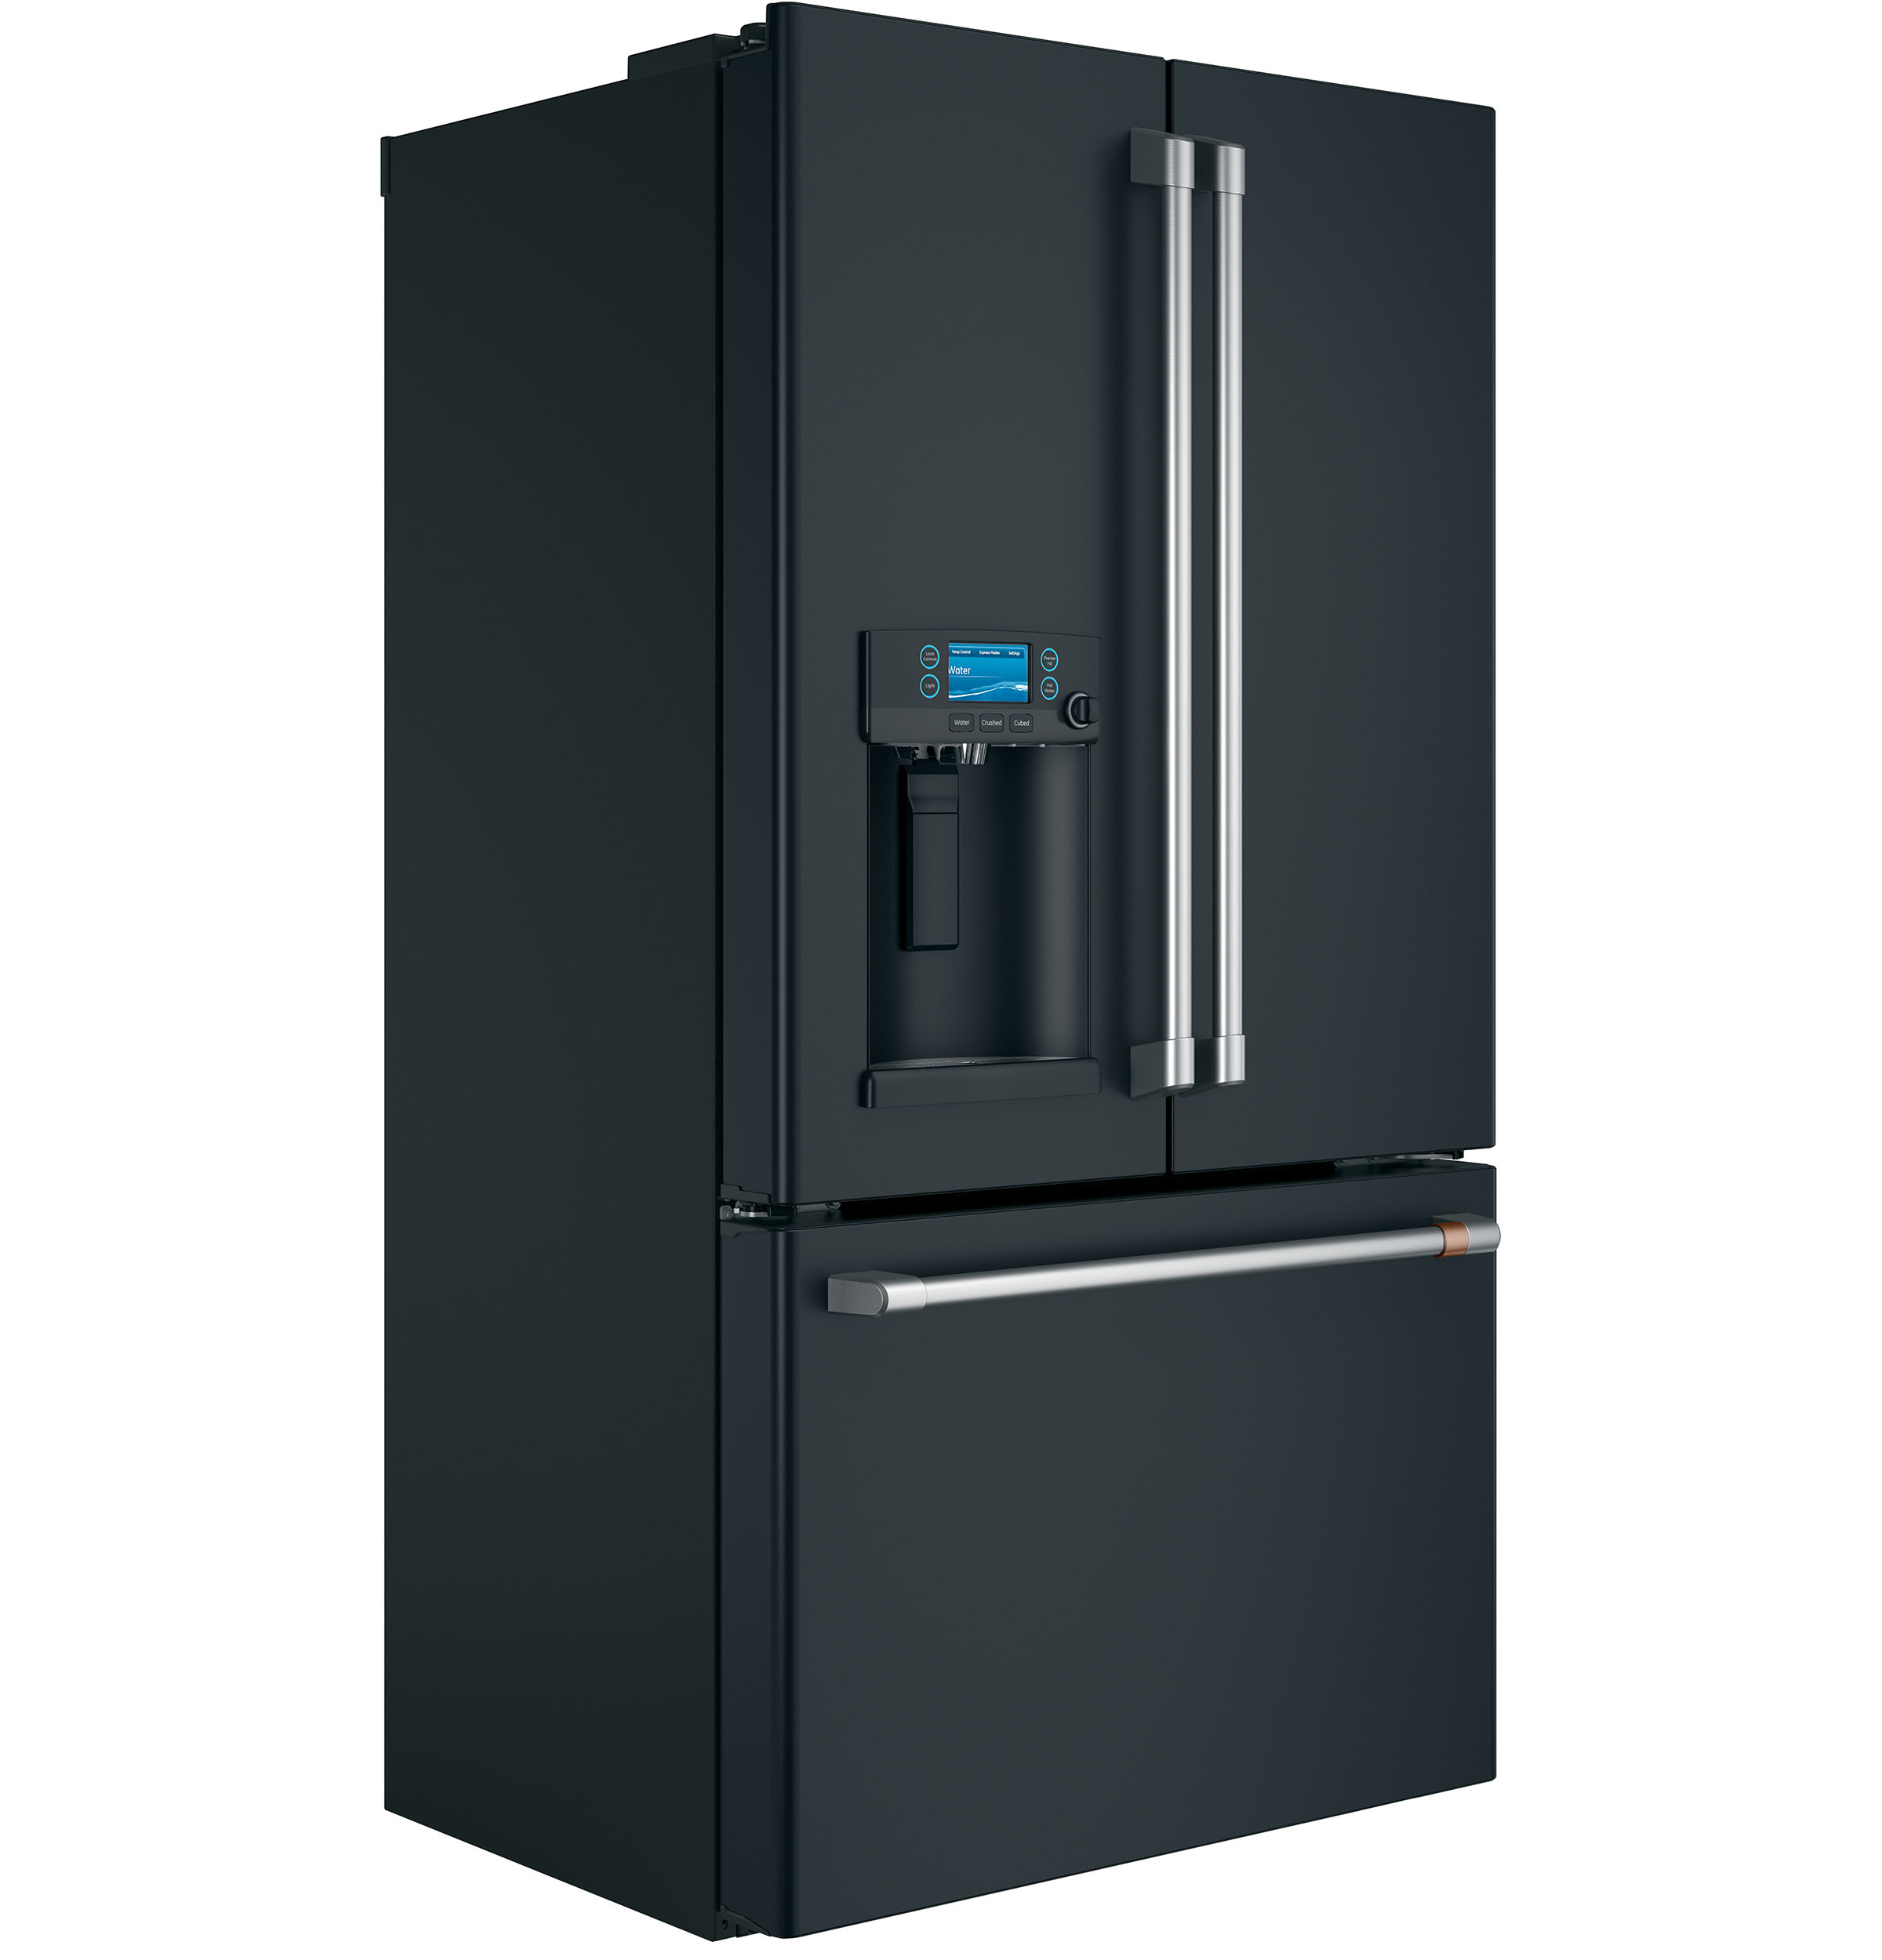 Model: CYE22TP3MD1 | Café™ ENERGY STAR® 22.2 Cu. Ft. Counter-Depth French-Door Refrigerator with Hot Water Dispenser